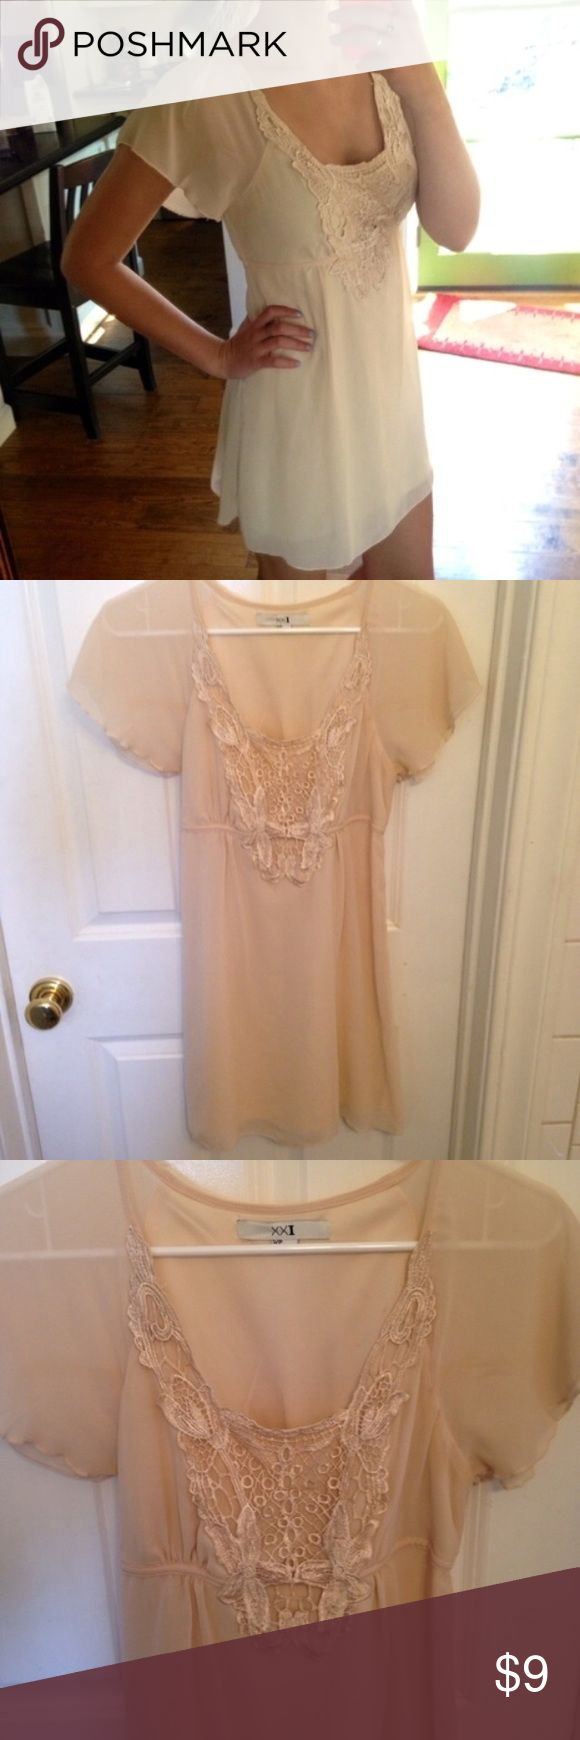 """Super cute beige summer/formal occasion dress Beautiful, high quality dress from Forever 21. The color is a nice beige with a slightly pink tint. It has detailed embroidering on the front and ties in the back. I wore it once to a wedding and don't plan on wearing it again! Could be casual or formal depending what shoes you wear with it. Size small. Is pretty short on me but I'm 5'8"""" and my legs are pretty long! Forever 21 Dresses Mini"""